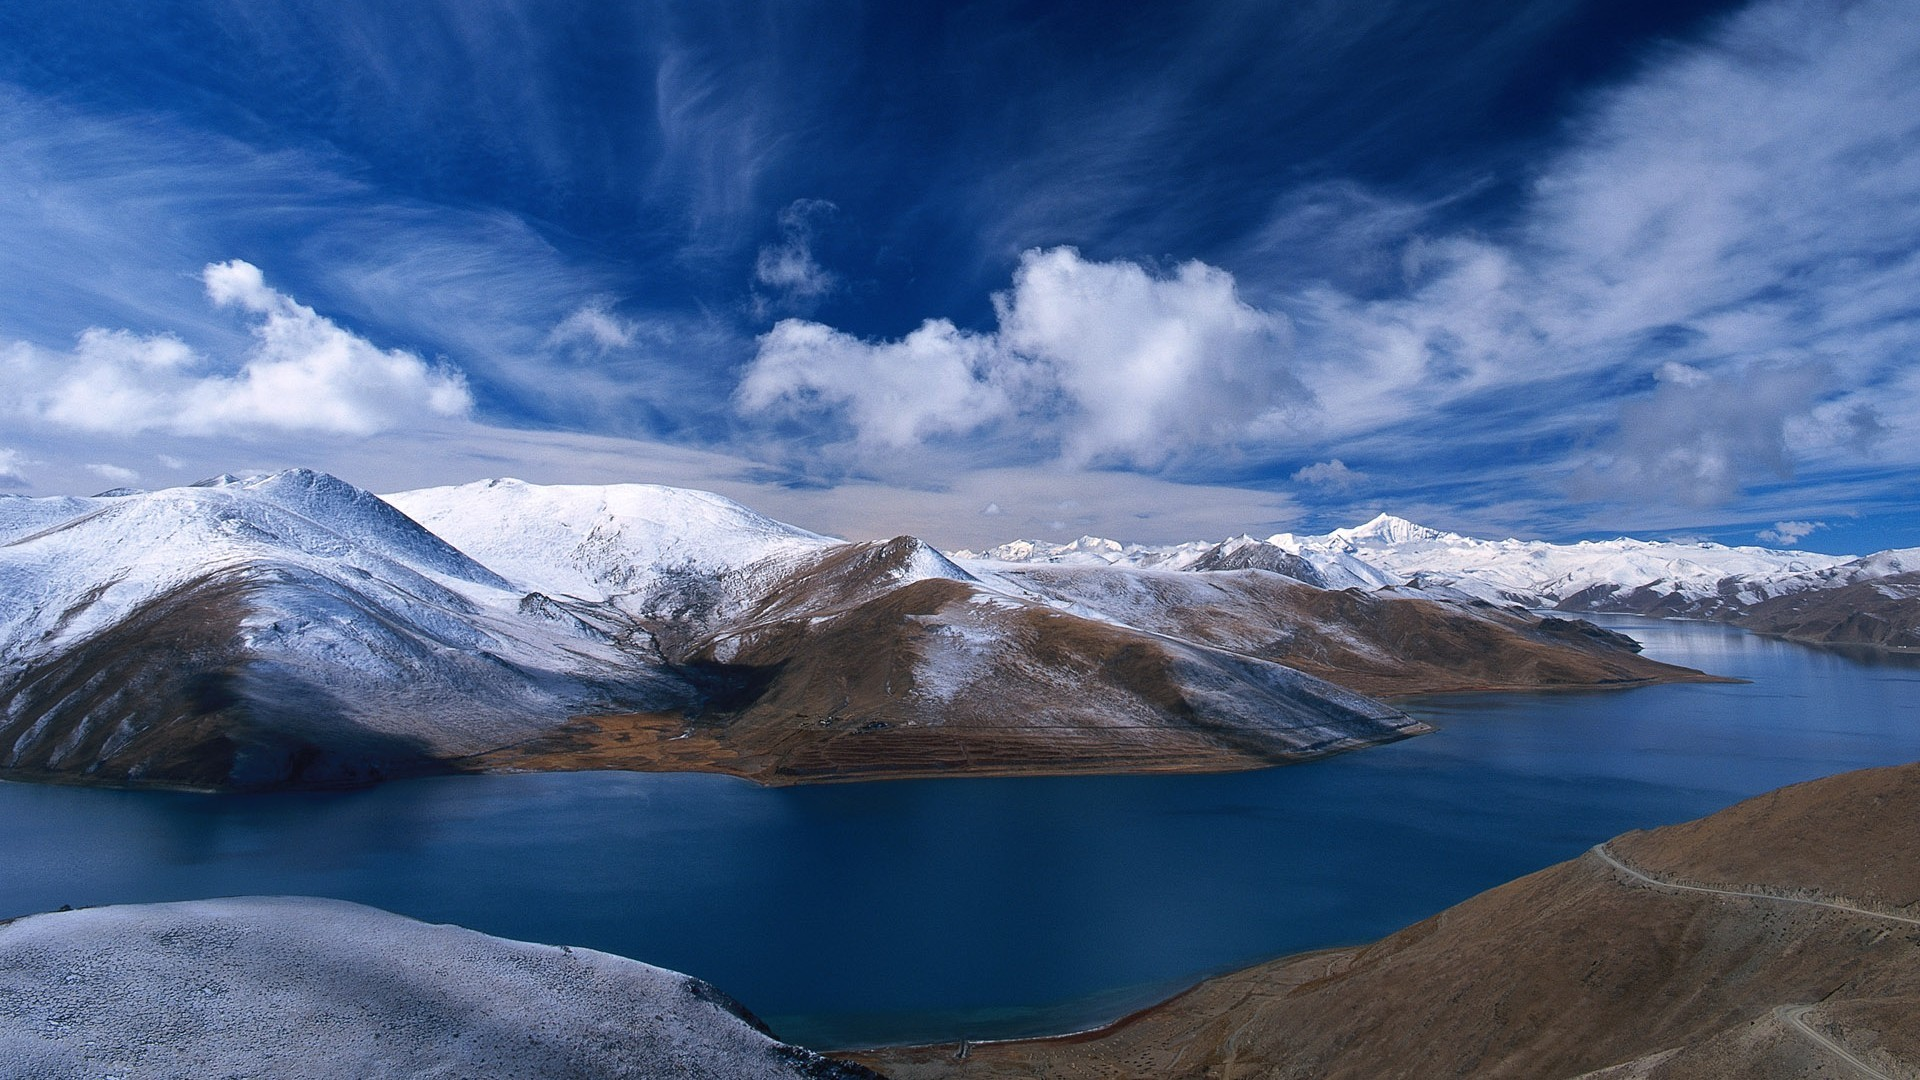 Res: 1920x1080, Exquisite Chinese landscape wallpaper #9 - .